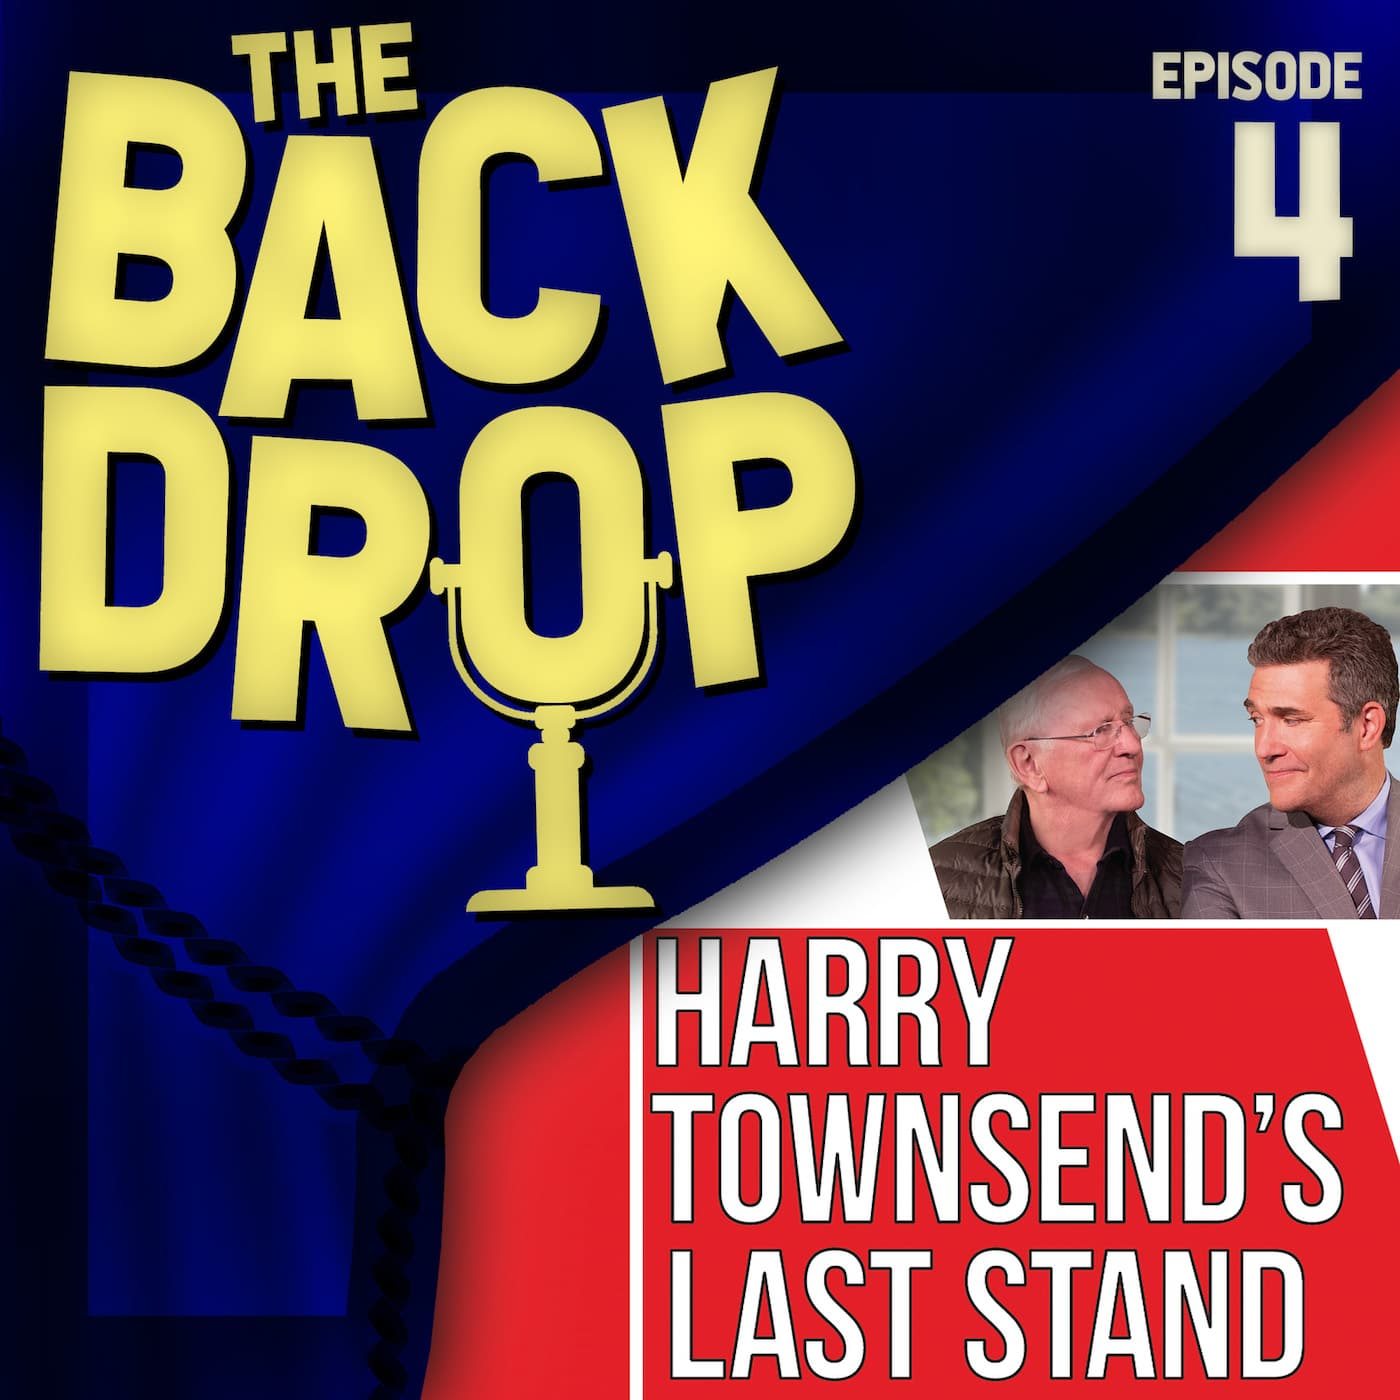 The Backdrop Episode 4 Harry Townsend's Last Stand